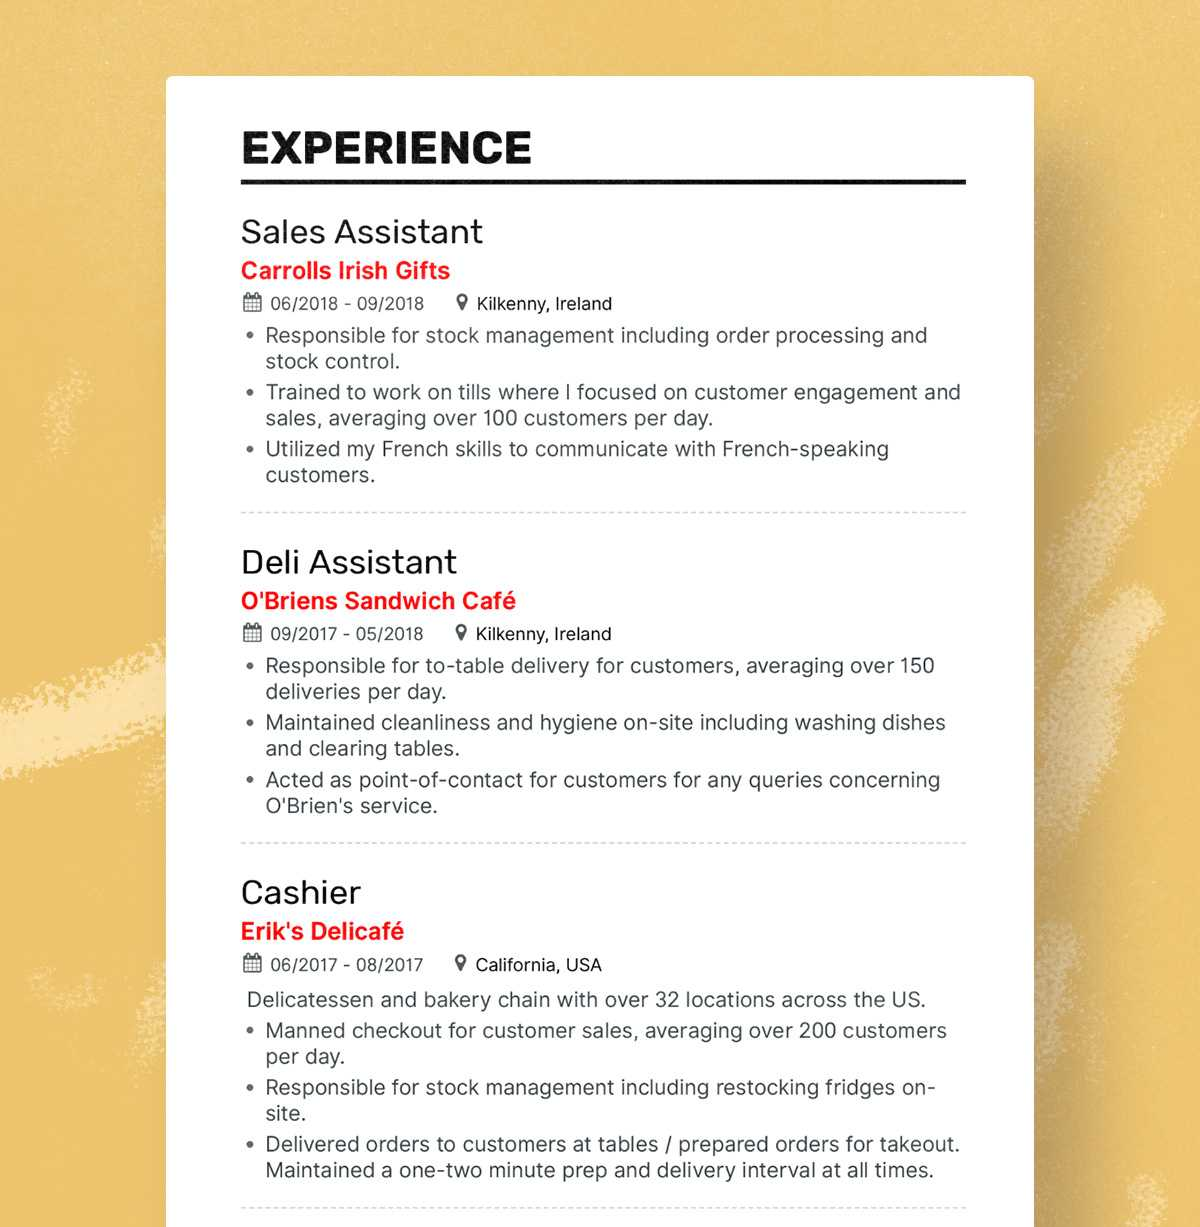 the best fresher resume formats and samples for fresh graduate hannah experience strong Resume Best Resume For Fresh Graduate